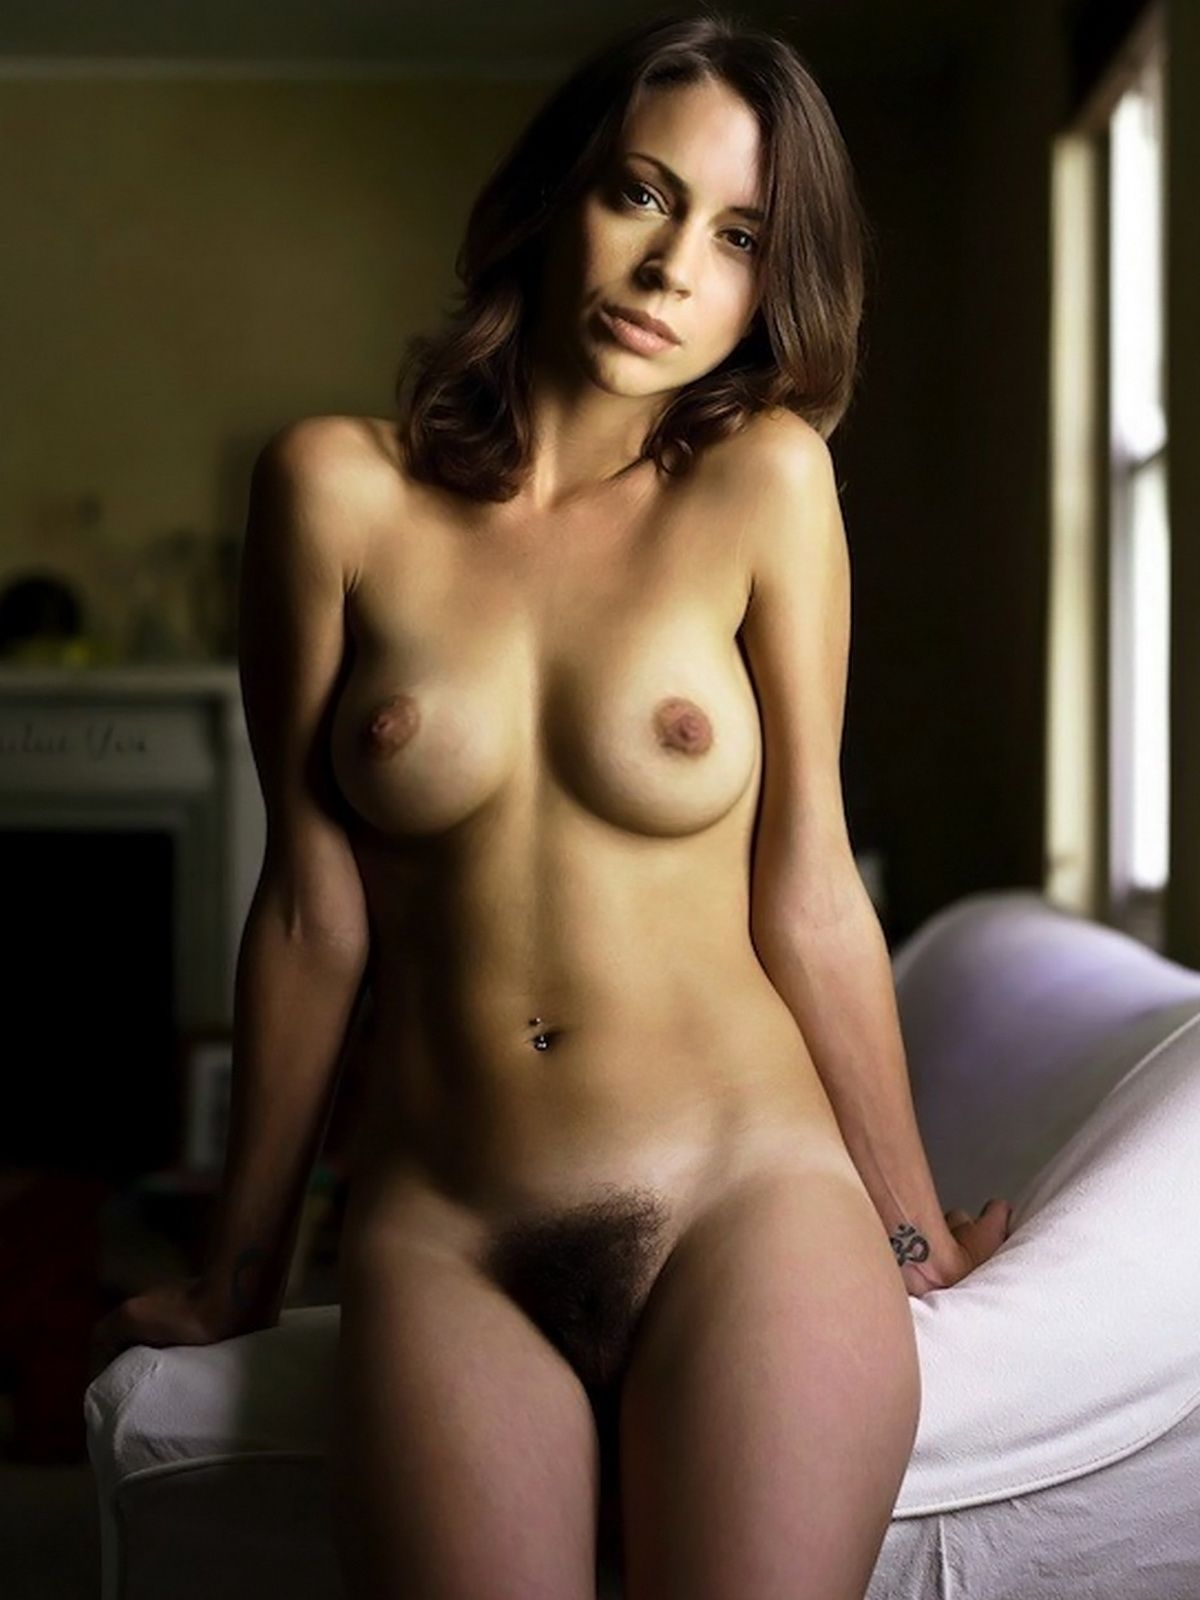 alyssa milano full naked pose - her beautiful bush is all natural